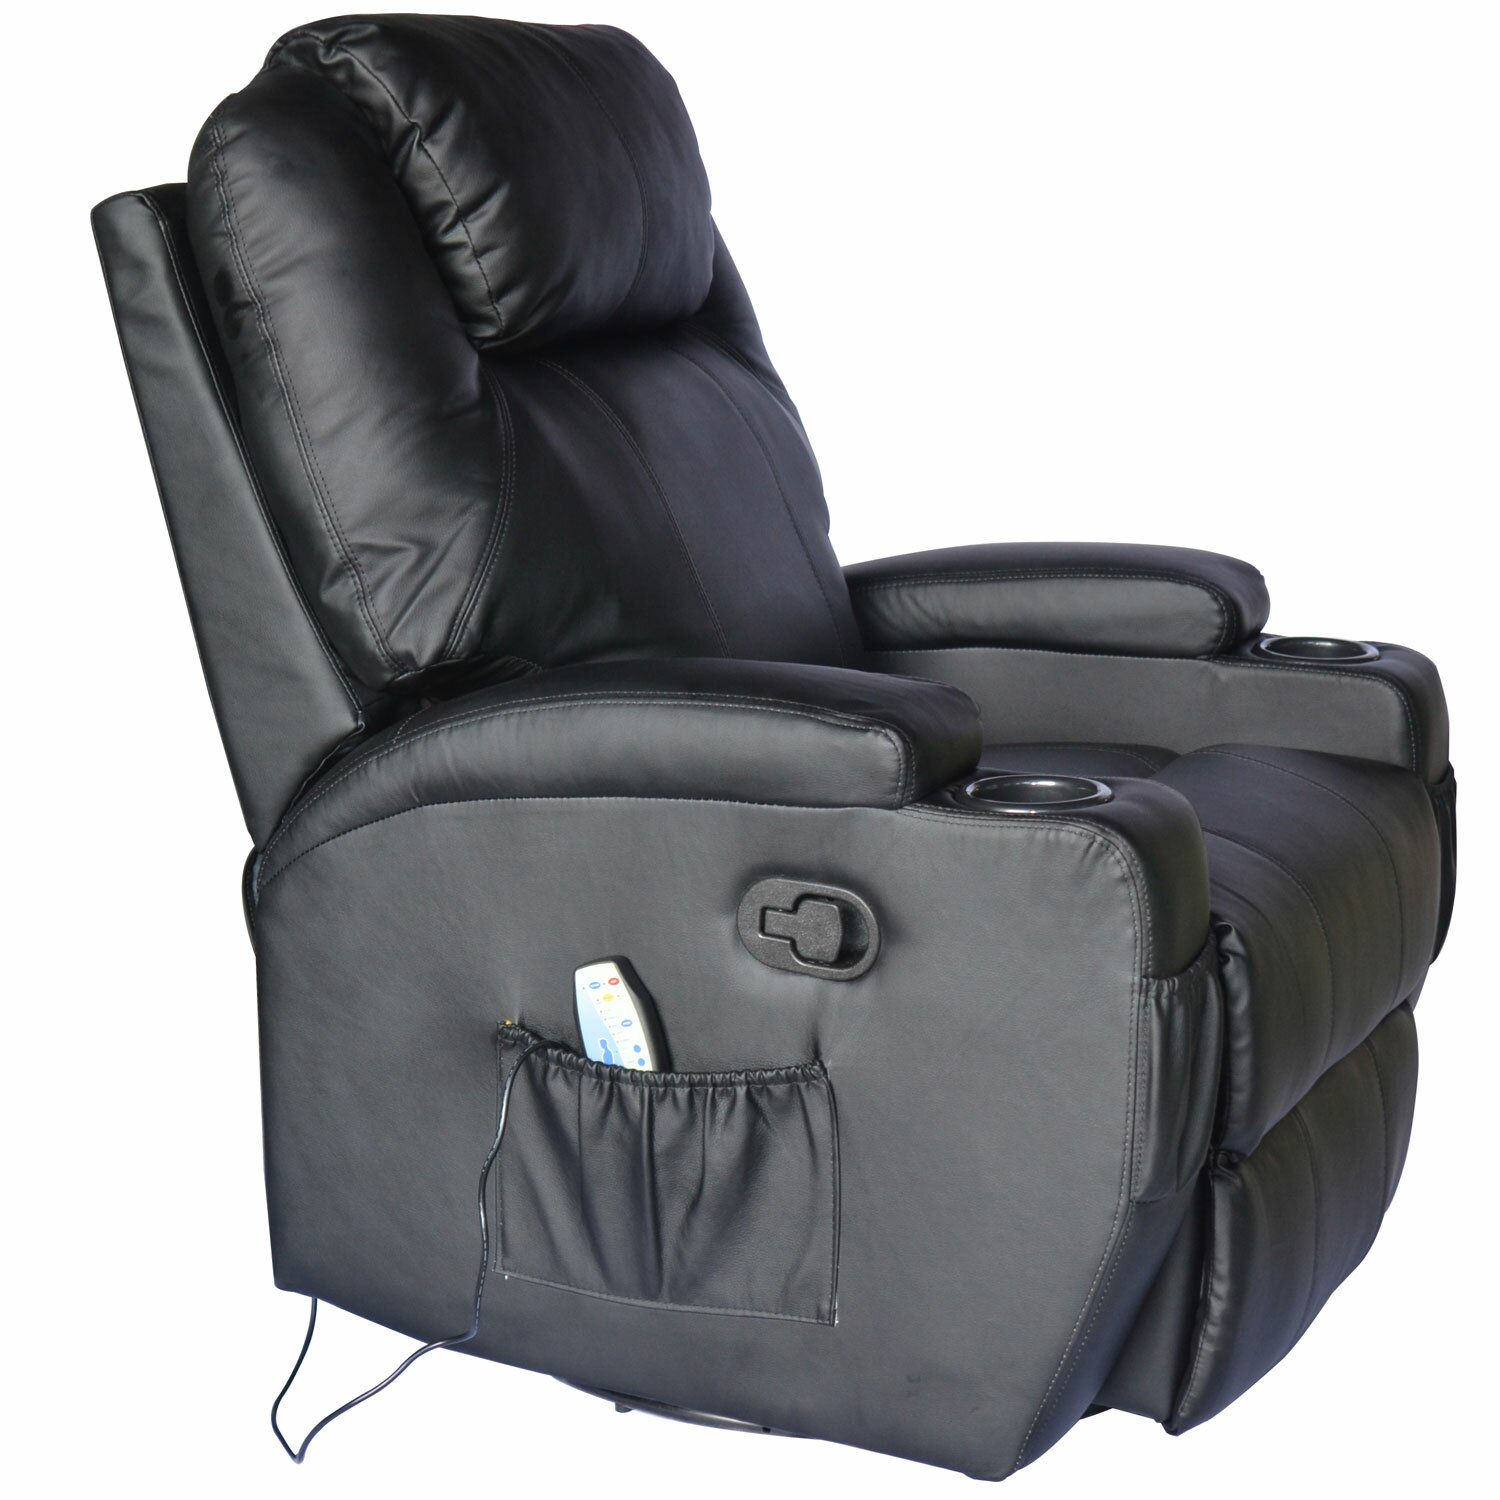 Outsunny Homcom Deluxe Heated Vibrating Vinyl Leather